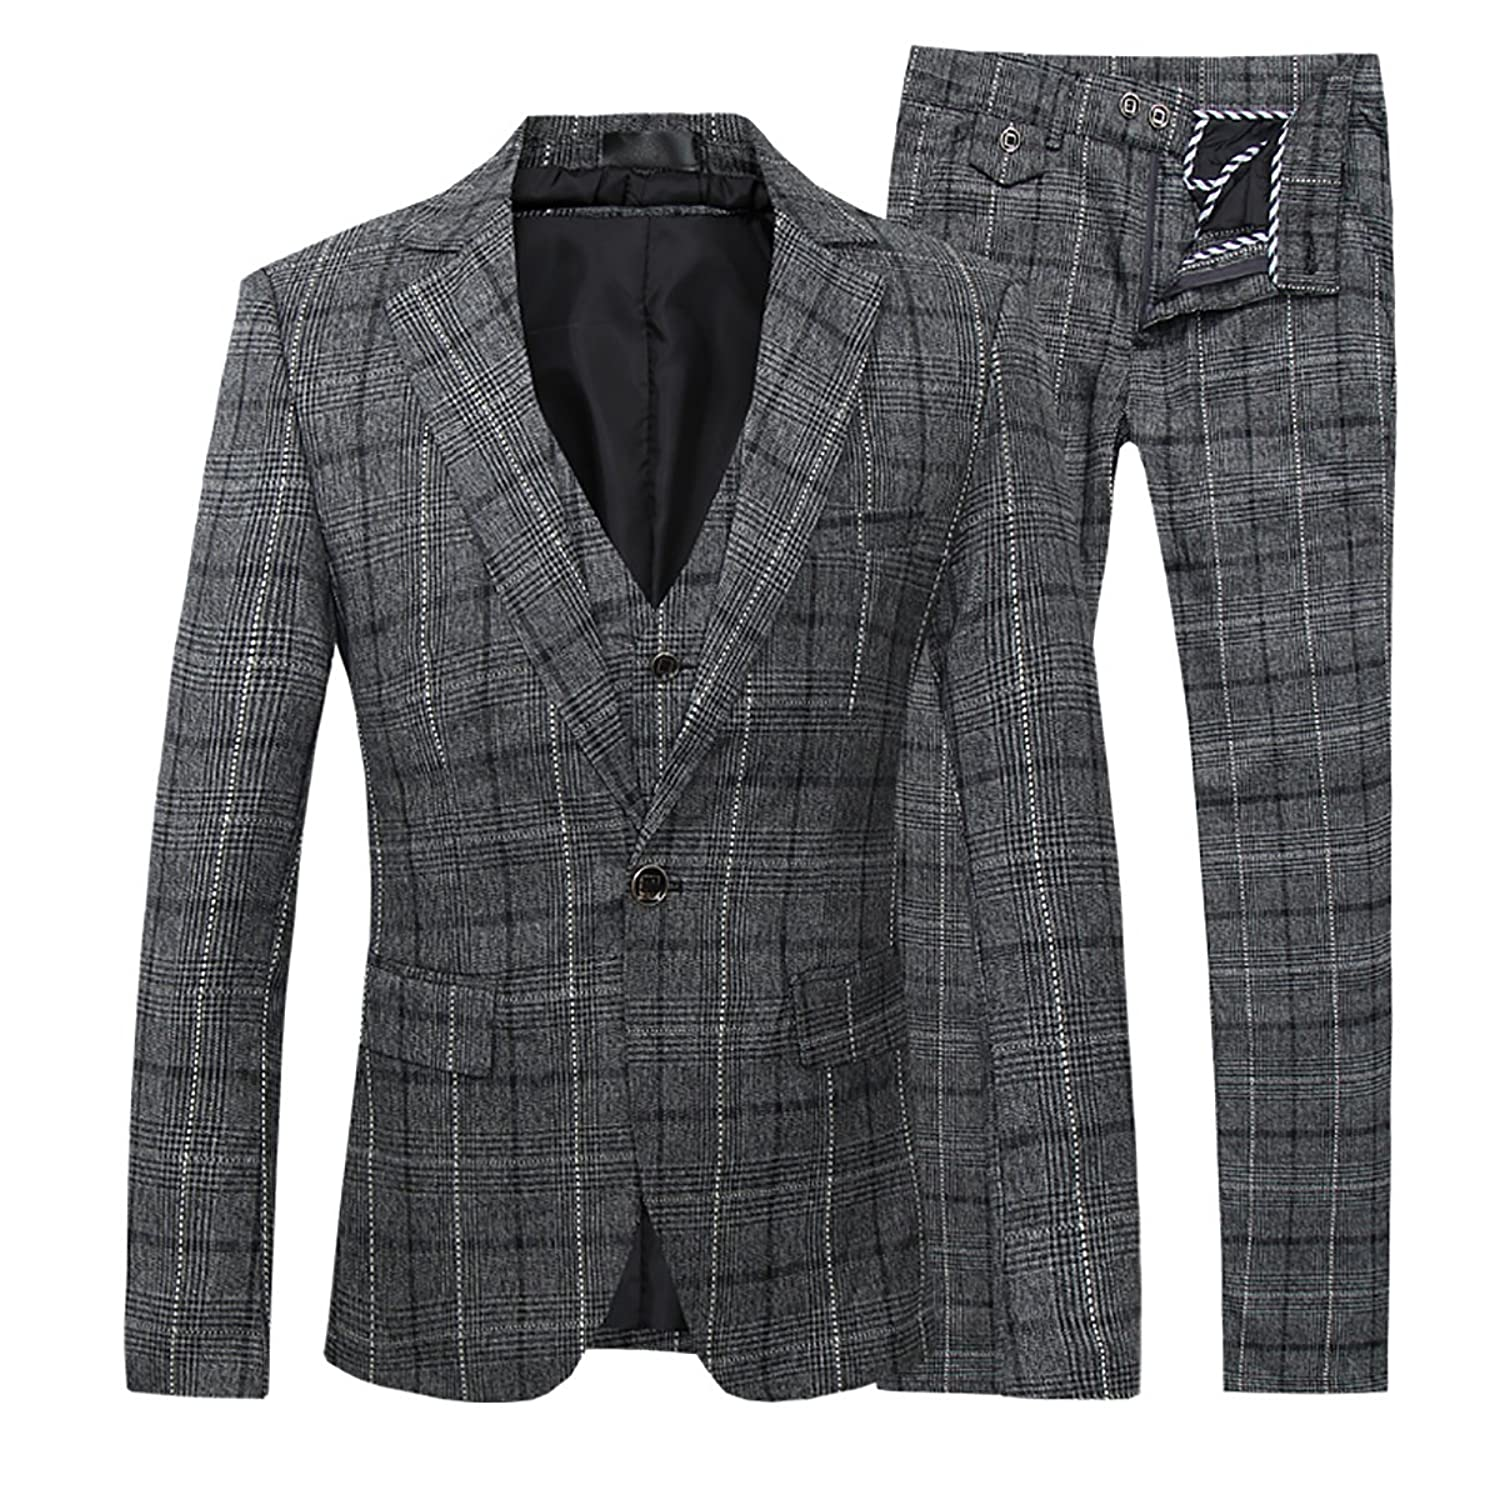 1920s Mens Suits | Gatsby, Gangster, Peaky Blinders Mens 3-Piece Suit Plaid Modern Fit Single Breasted Smart Formal Wedding Suits $84.99 AT vintagedancer.com